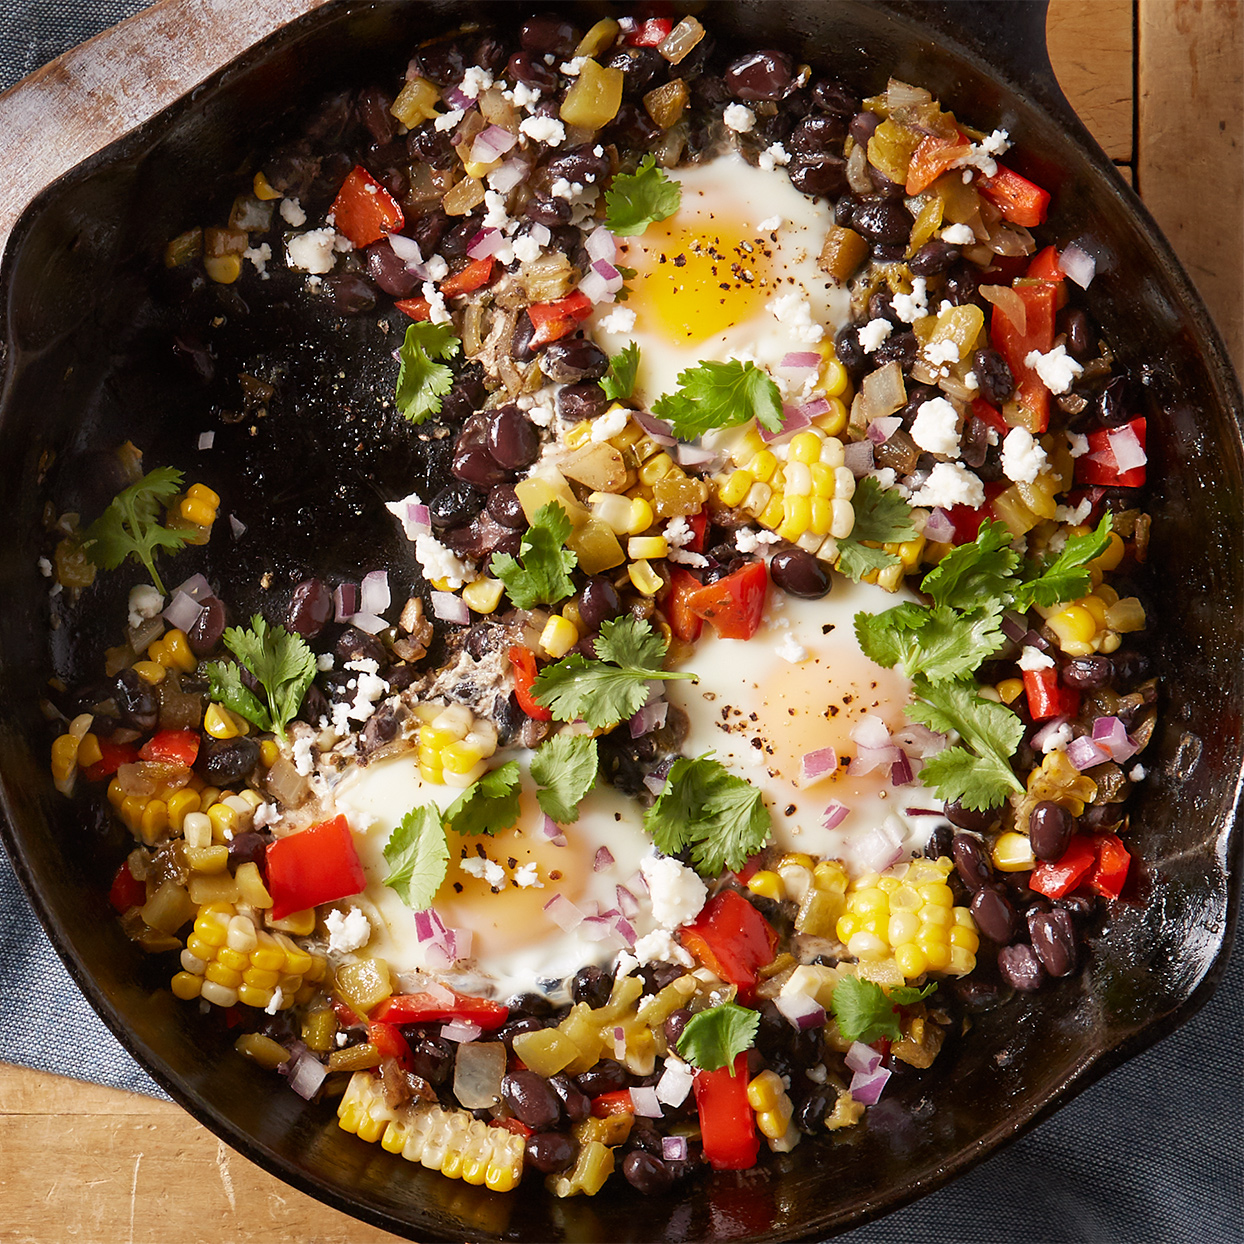 This sweet and spicy black bean and corn recipe features queso fresco, a Mexican cheese that is salty, crumbly, and perfectly meltable. Source: Diabetic Living Magazine, Summer 2020